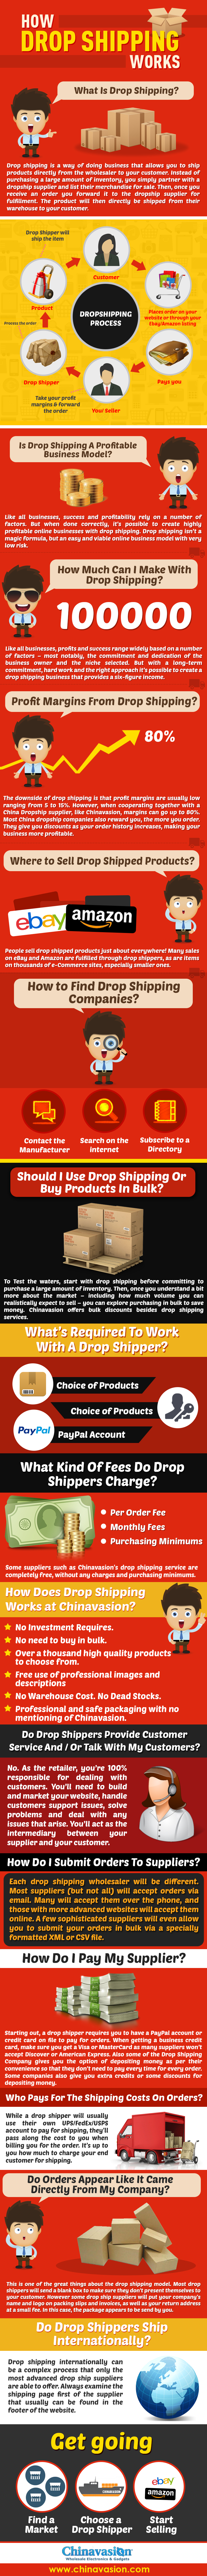 How Drop Shipping Works? [Infographic]